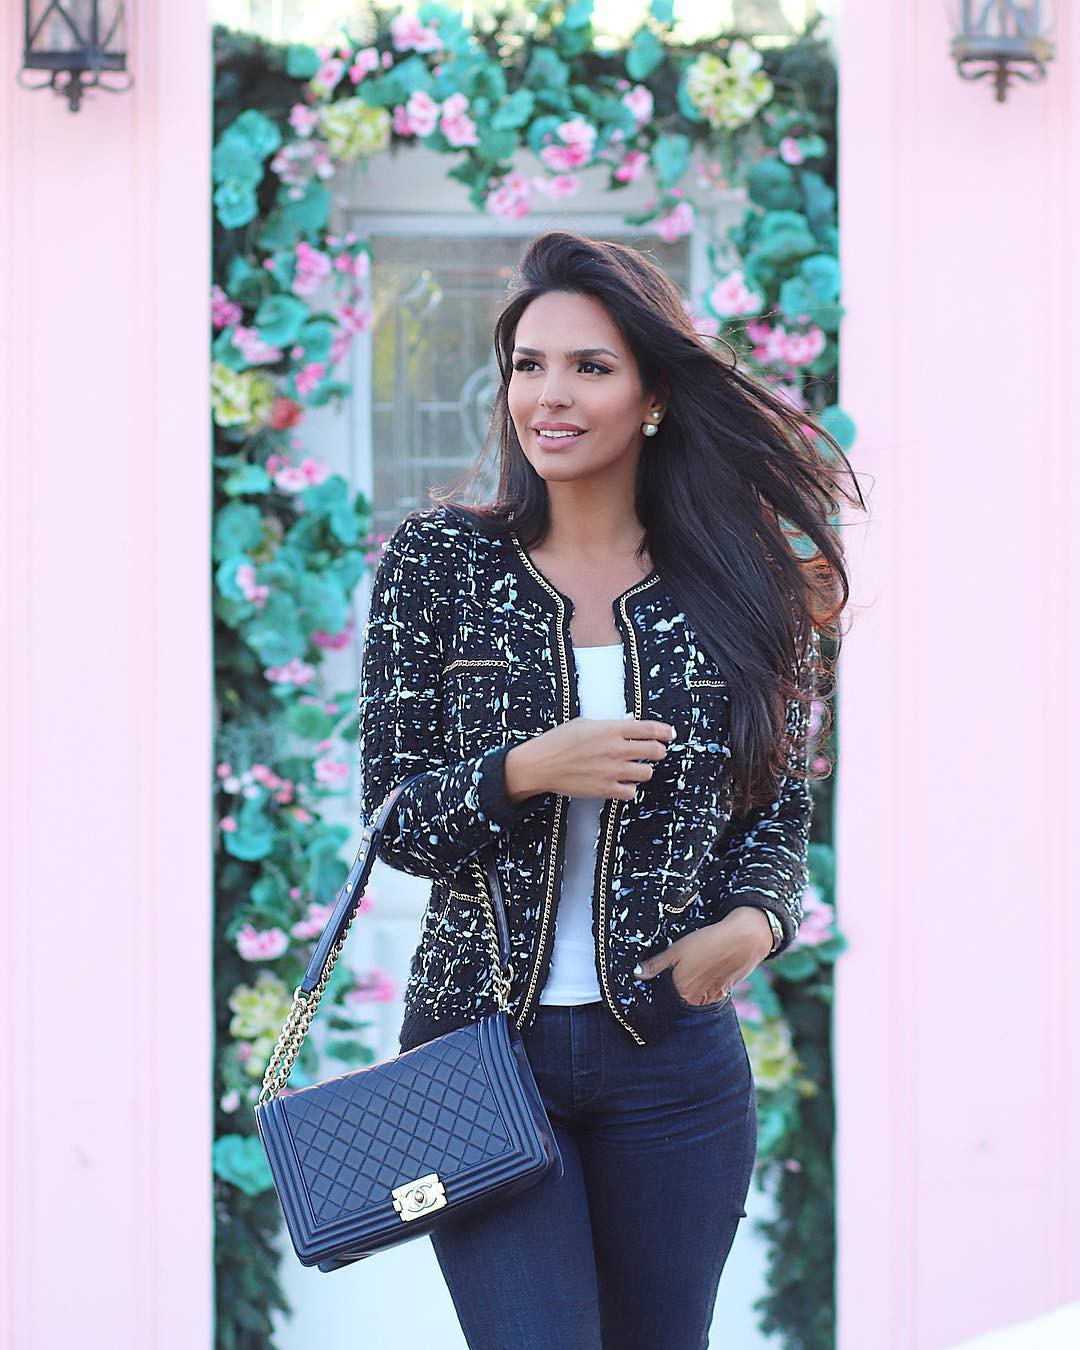 turquoise outfit style with blazer, jacket, denim